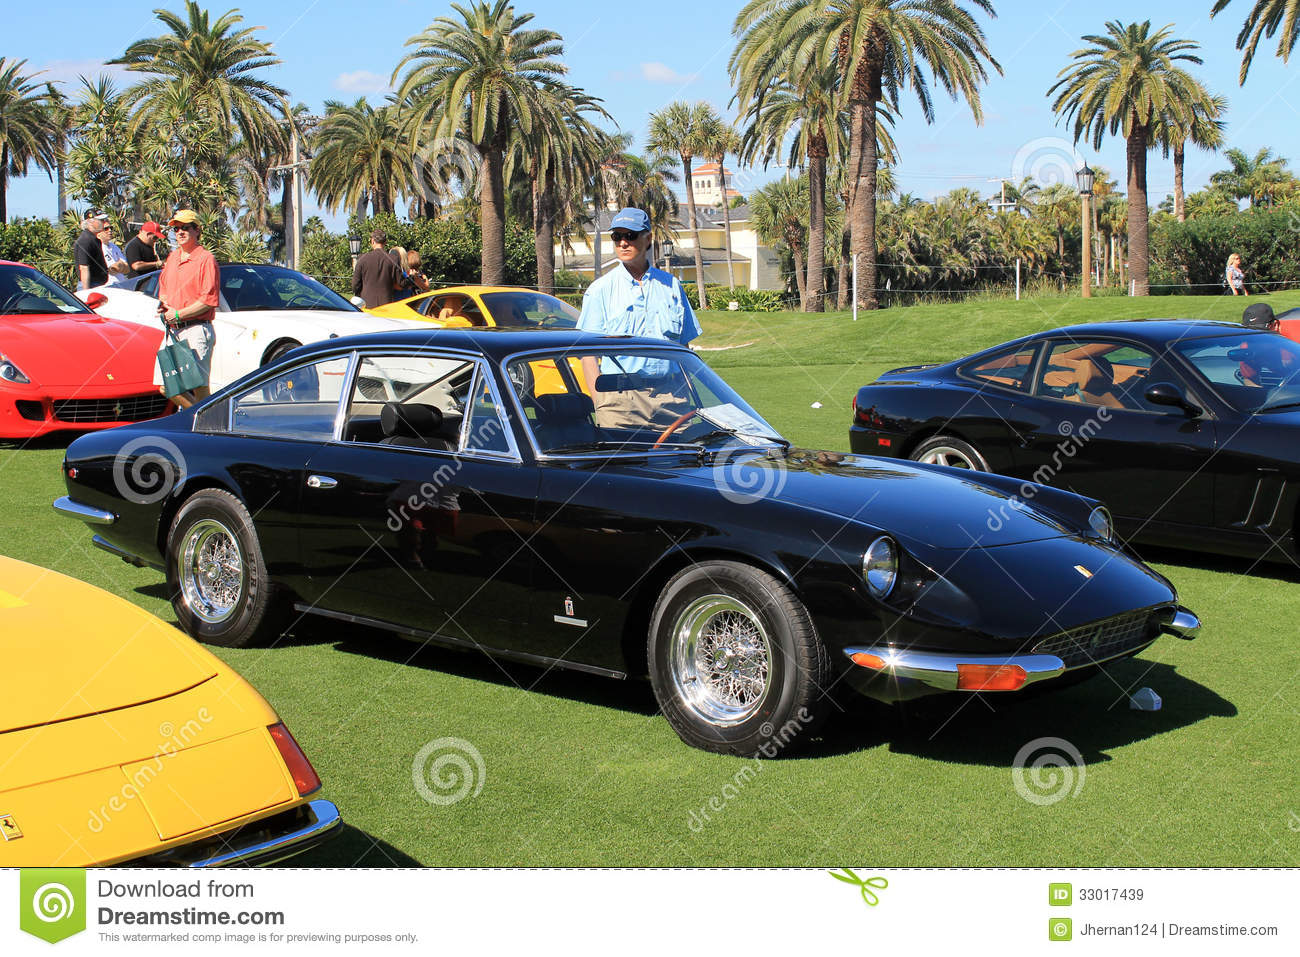 ferrari 365 prototype ferrarichat the world 39 s largest ferrari community. Black Bedroom Furniture Sets. Home Design Ideas